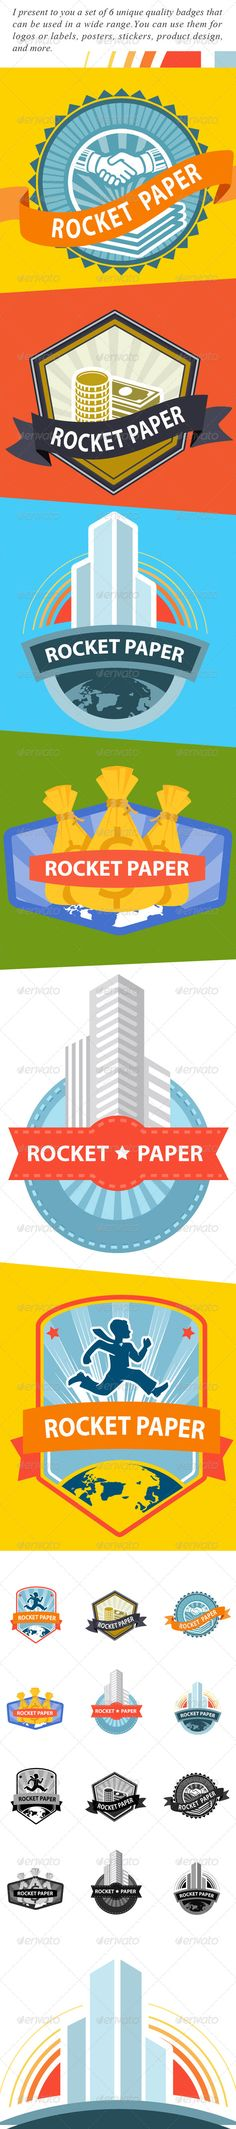 Web Elements & Badges for Rocket Paper #jpg #image #money #badges • Available here → https://graphicriver.net/item/web-elements-badges-for-rocket-paper/5993635?ref=pxcr